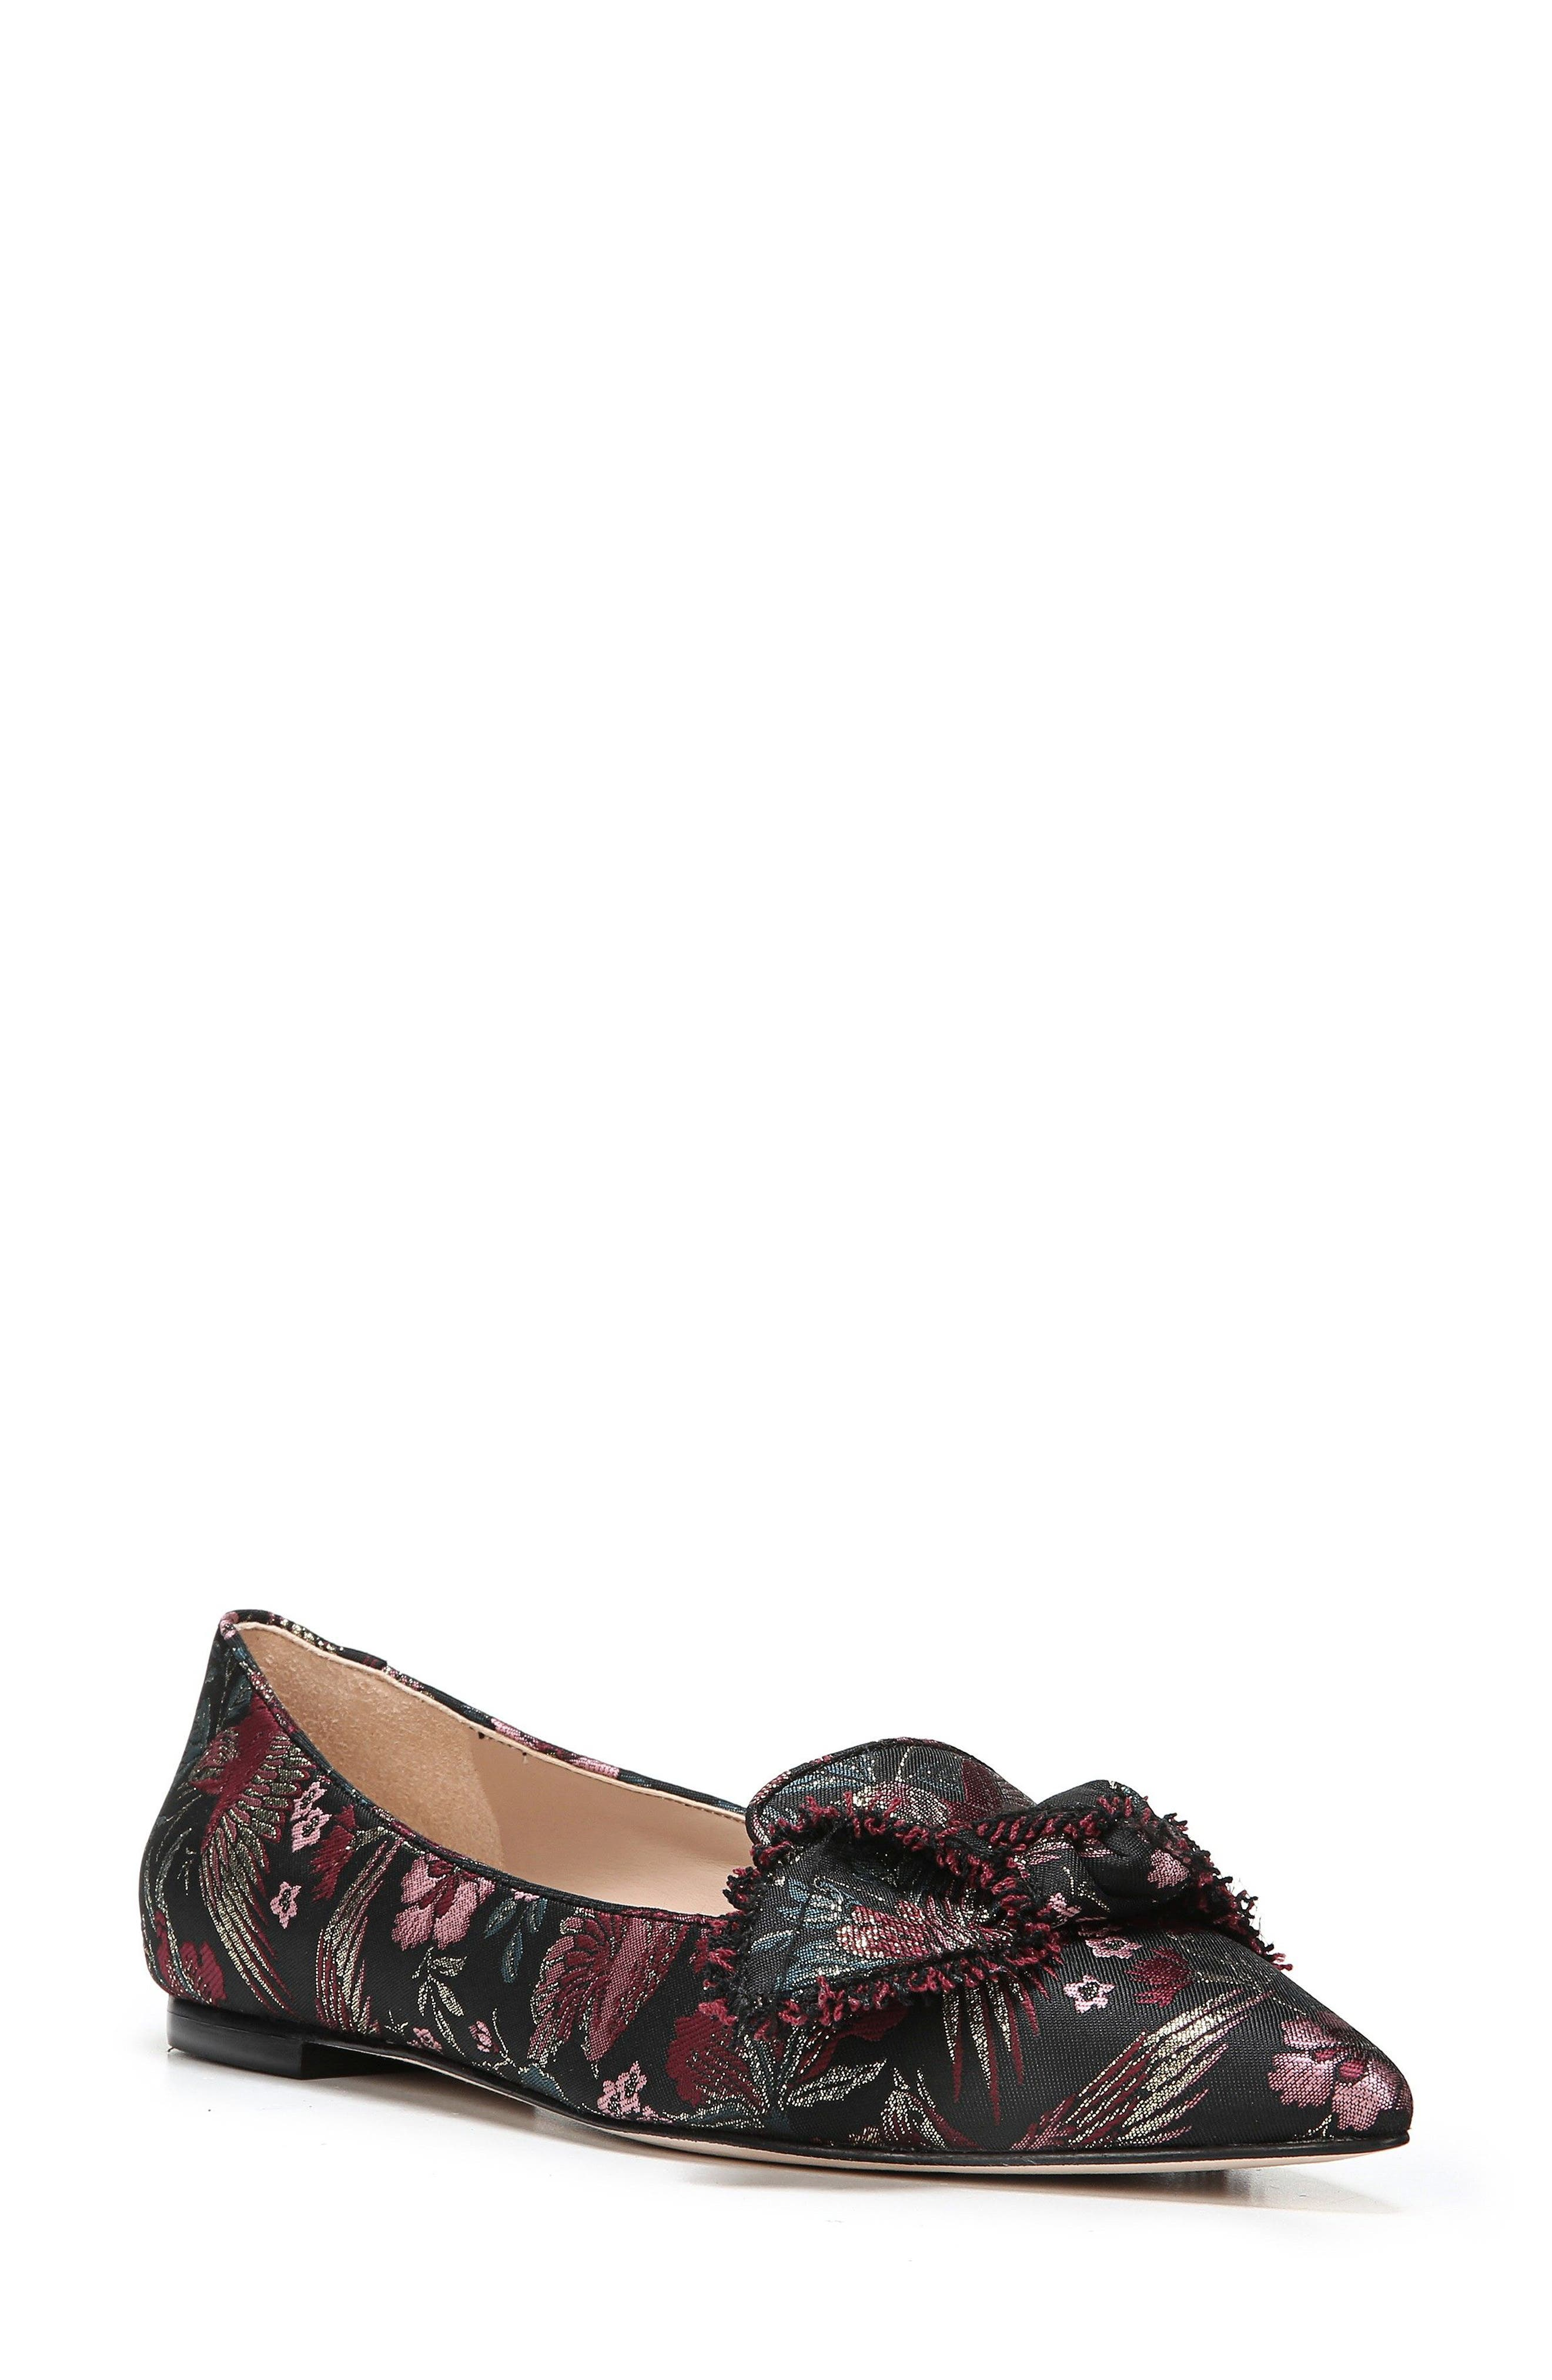 Rochester Bow Pointy Toe Flat,                             Main thumbnail 1, color,                             002